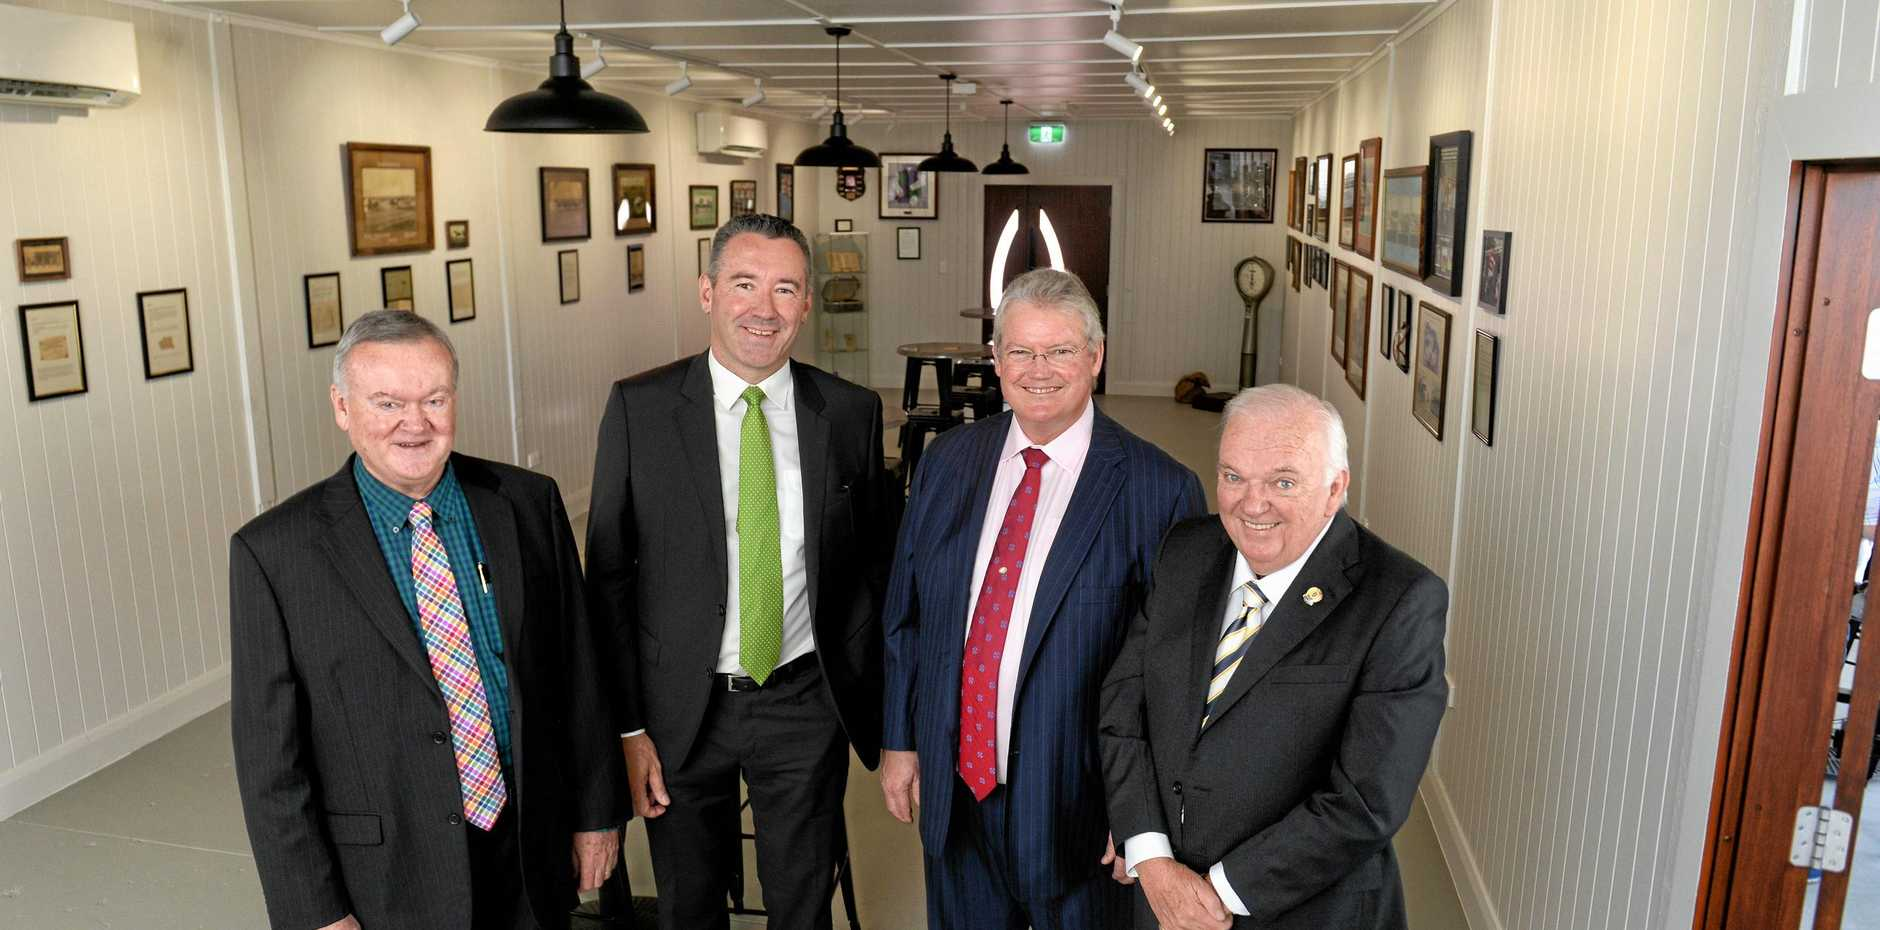 Trainer Anthony Cummings (second from right) with Racing Queensland CEO Brendan Parnell and Ipswich Turf Club committee members Brian North (left) and Liam Tansey at the opening of the Ipswich Racing Museum.